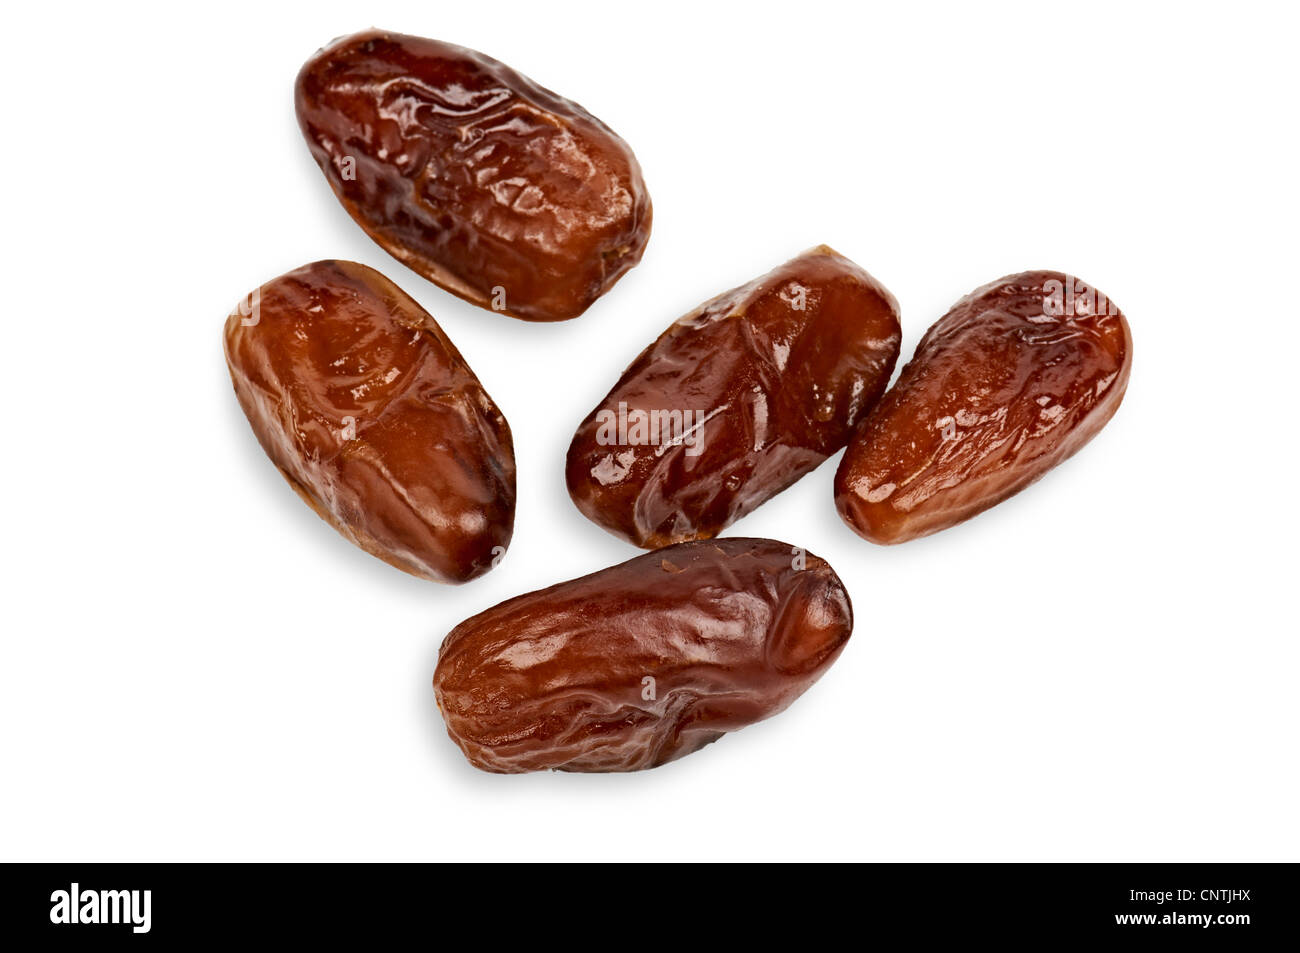 Dried Dates - Stock Image